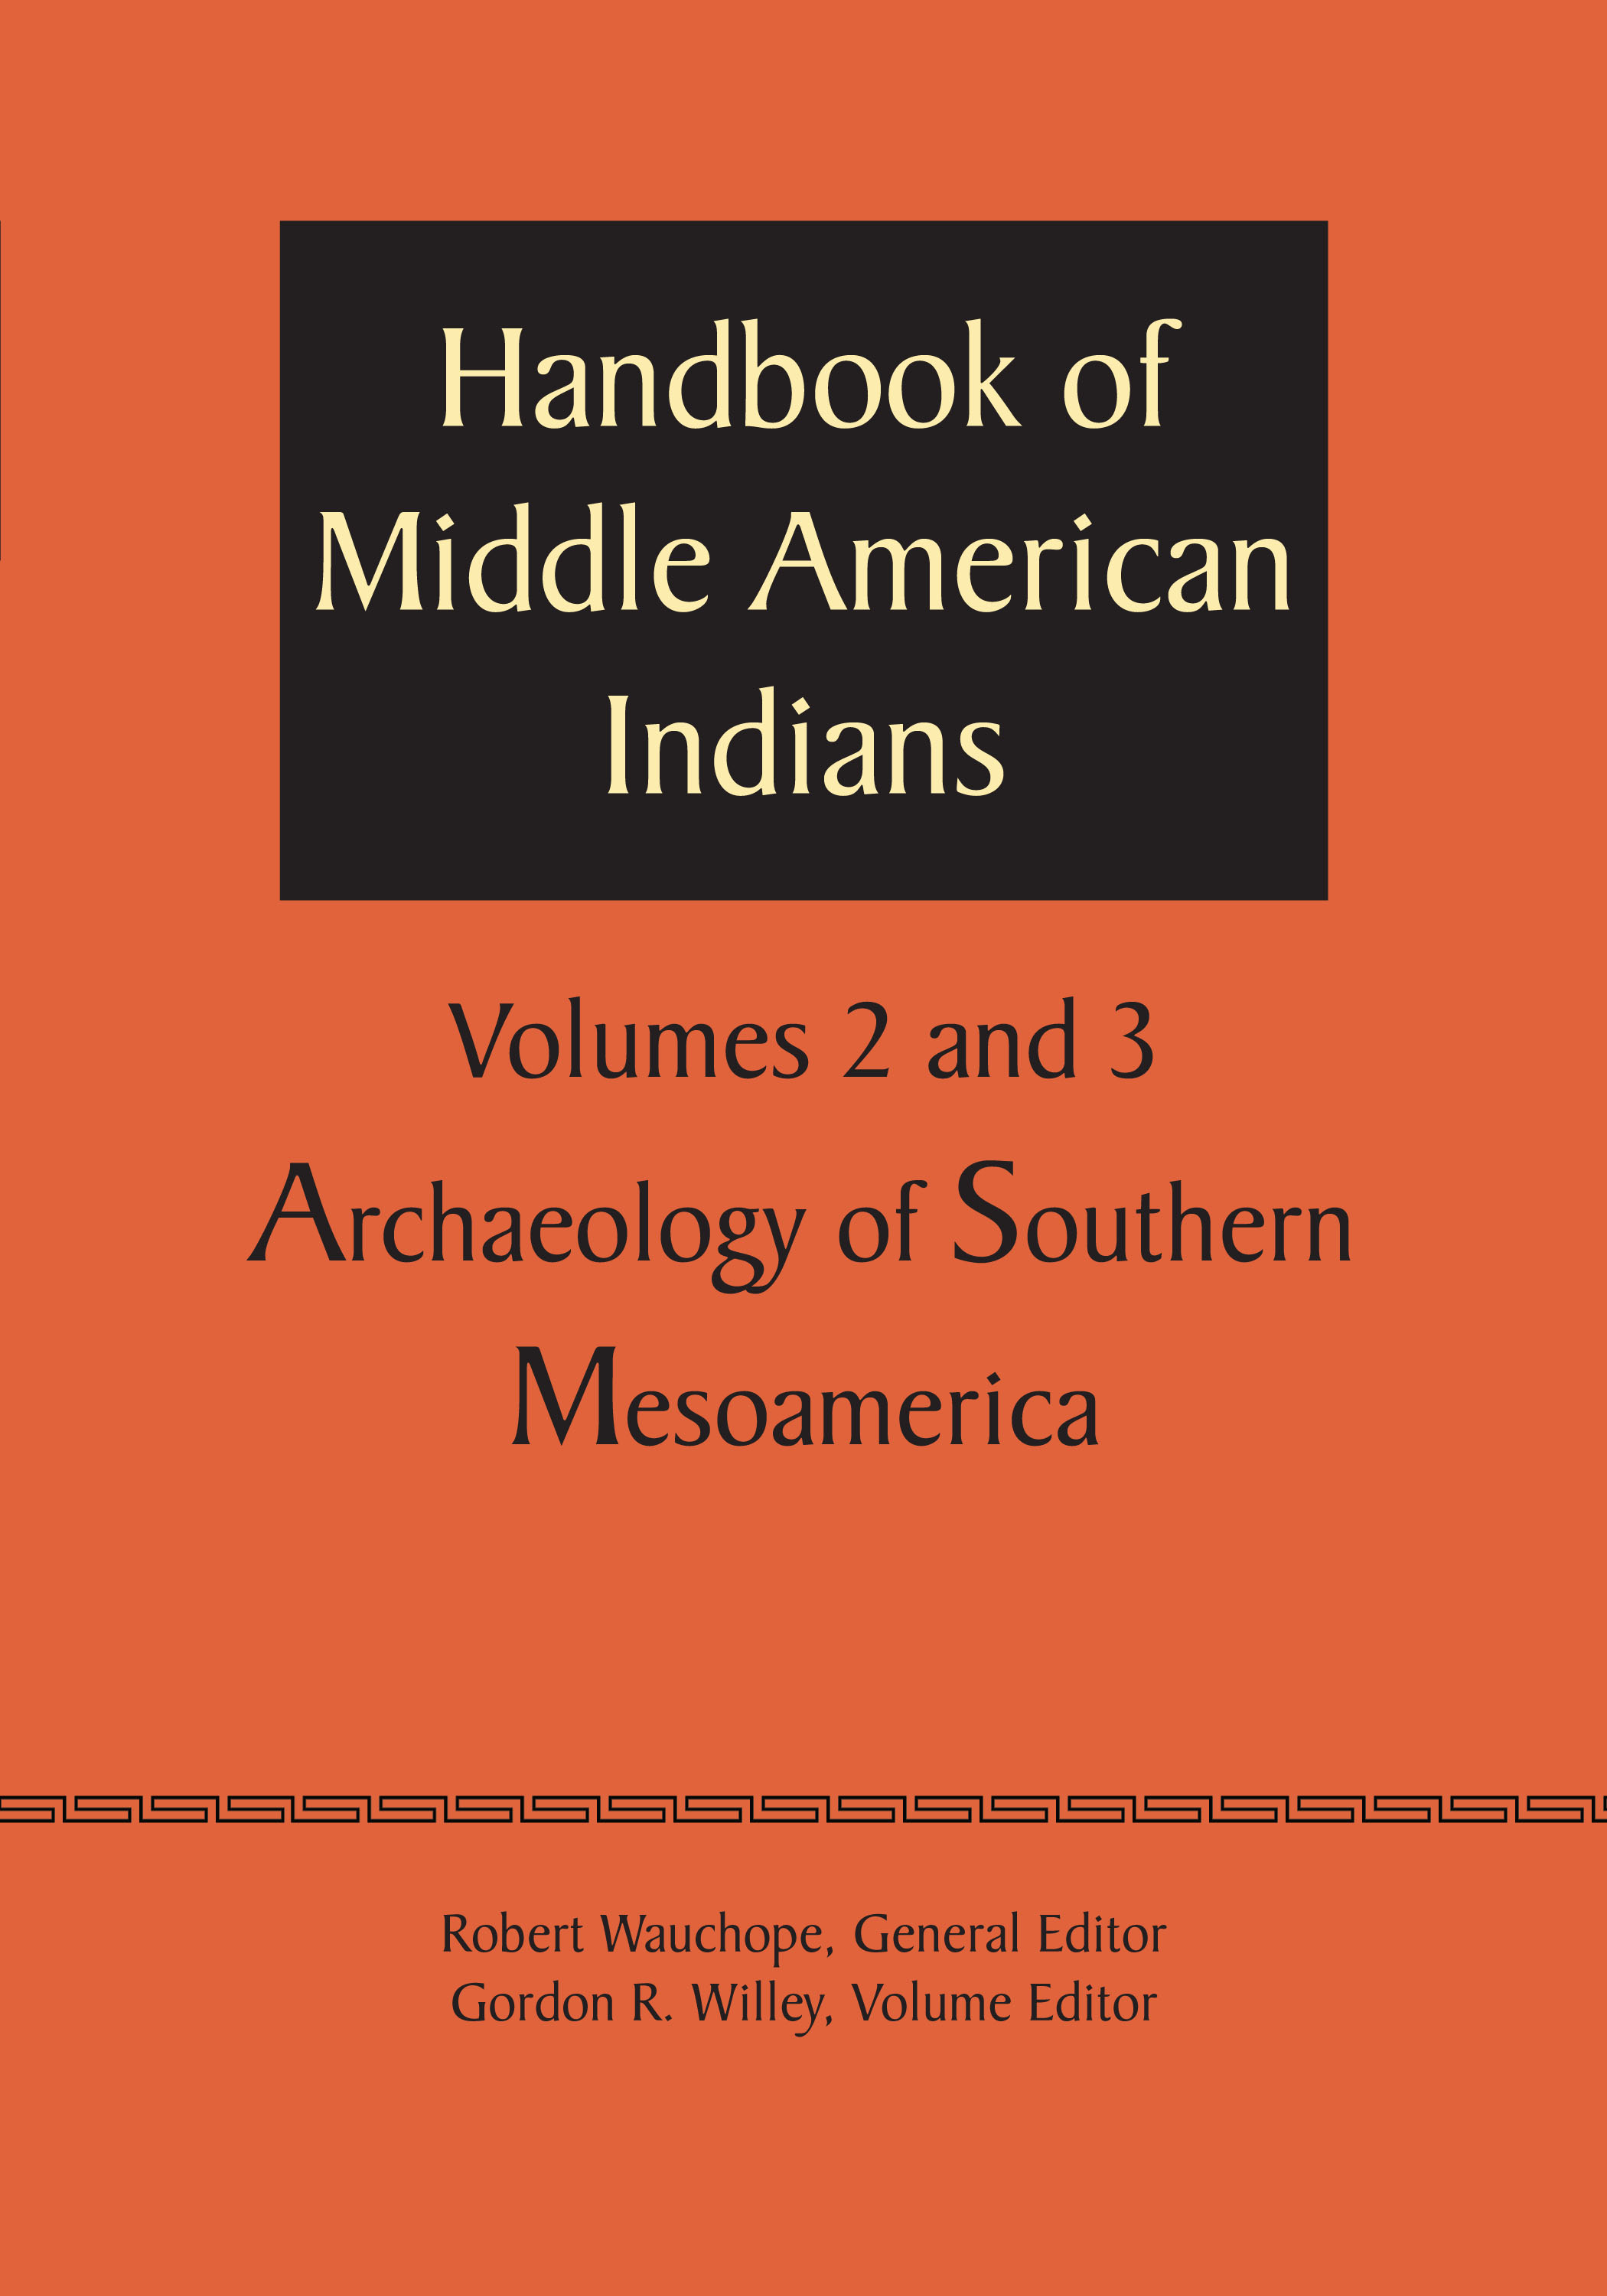 Cover of Handbook of Middle American Indians, Volume 2/3